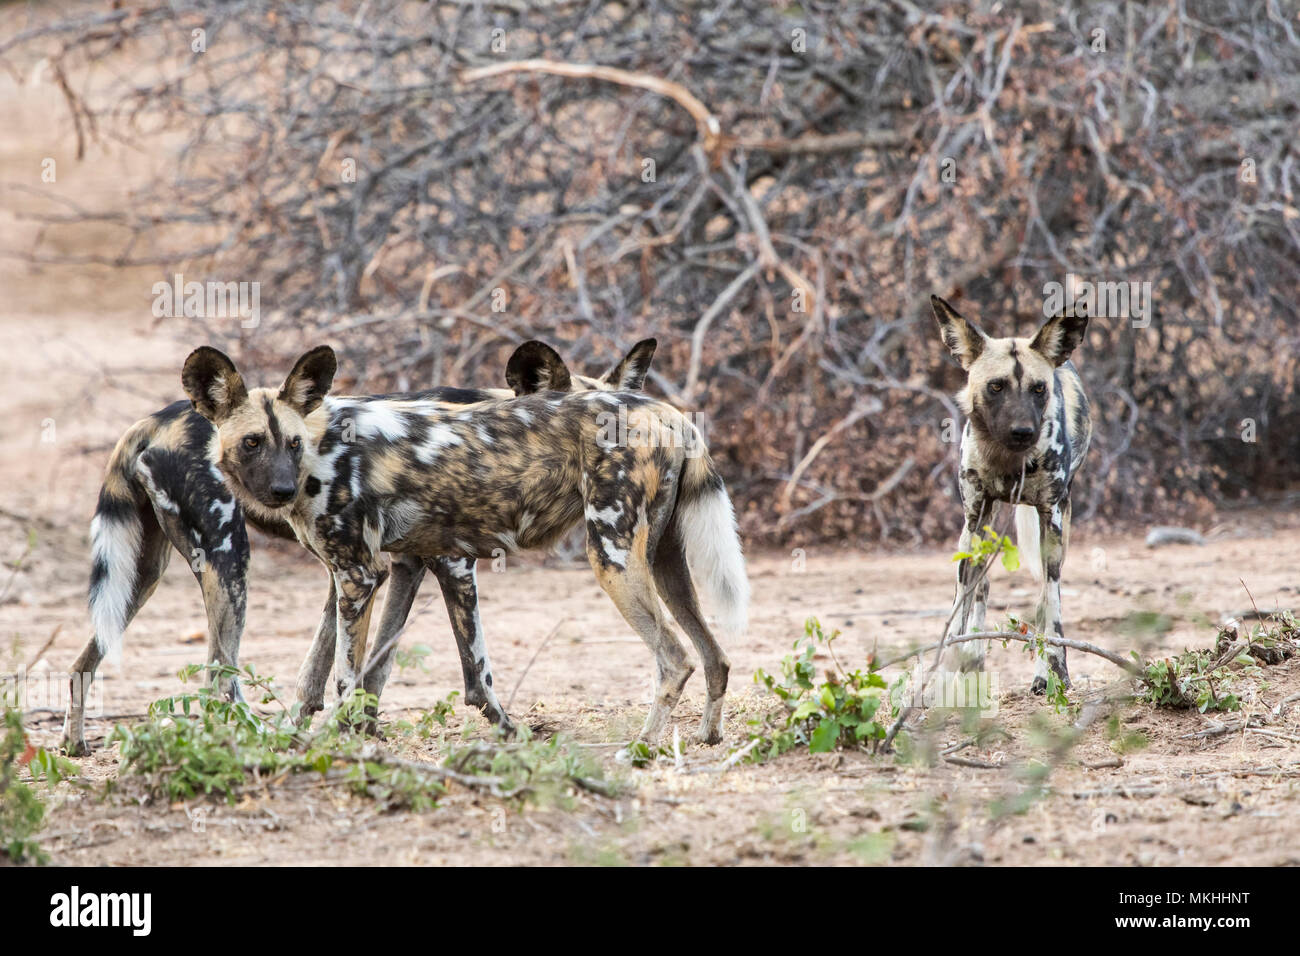 Lycaon (Lycaon pictus), halting during the hunt, Sabi Sand Reserve, South Africa - Stock Image